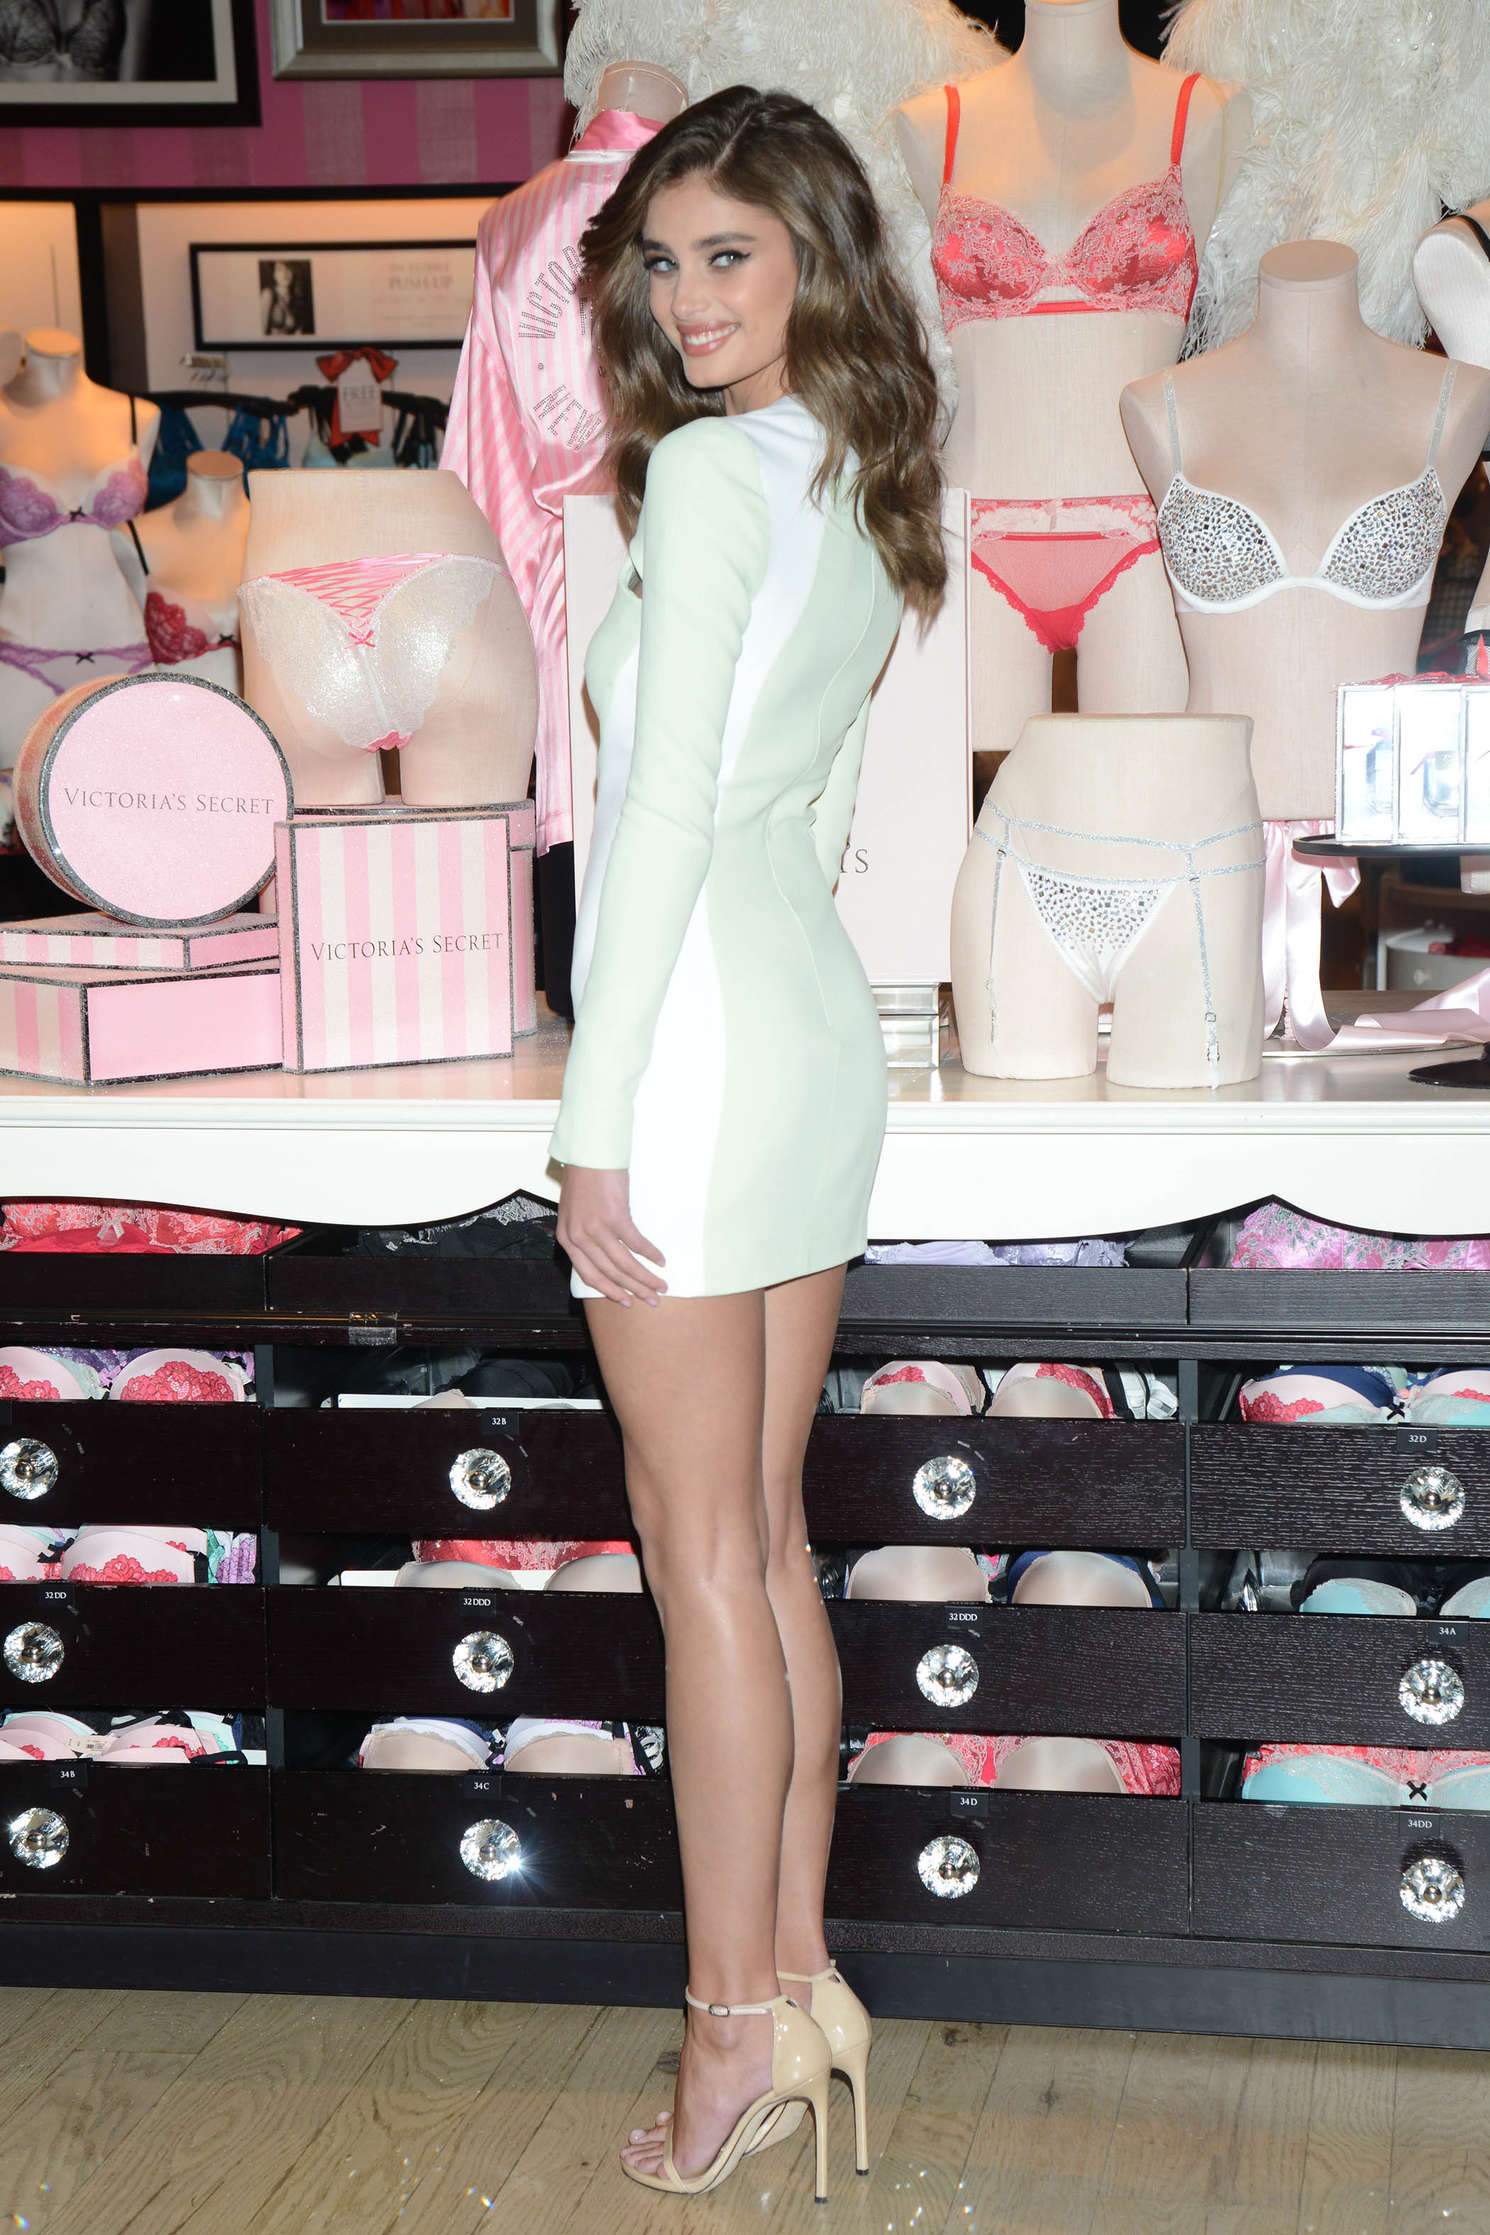 Taylor Hill 2015 : Taylor Hill: Revealing Runway Looks at Victorias Secret -24